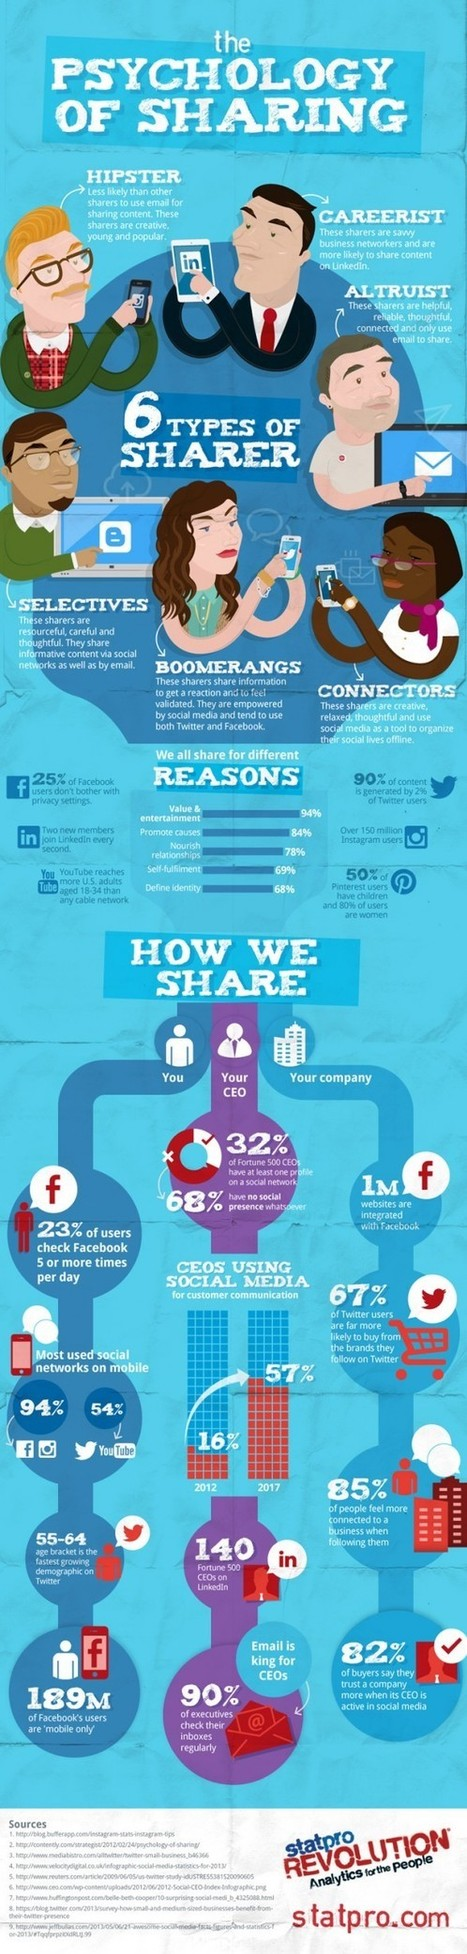 6 types of social sharer - which one are you? | Personal Branding and Professional networks - @Socialfave @TheMisterFavor @TOOLS_BOX_DEV @TOOLS_BOX_EUR @P_TREBAUL @DNAMktg @DNADatas @BRETAGNE_CHARME @TOOLS_BOX_IND @TOOLS_BOX_ITA @TOOLS_BOX_UK @TOOLS_BOX_ESP @TOOLS_BOX_GER @TOOLS_BOX_DEV @TOOLS_BOX_BRA | Scoop.it